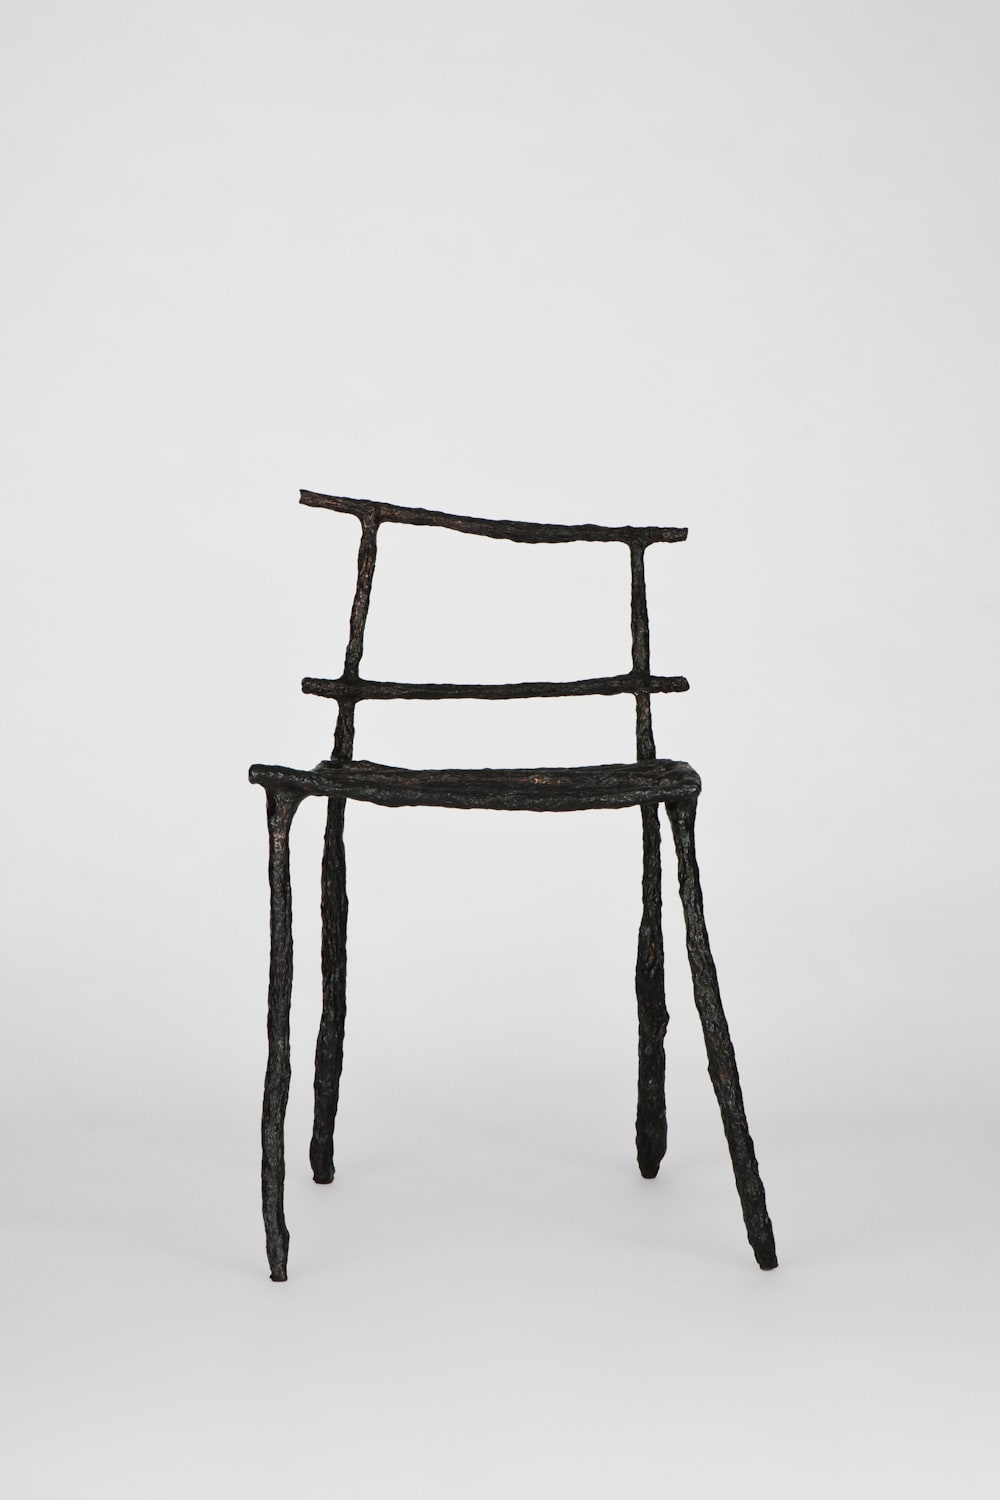 Michael Gittings Stick Chair, 2018 Blackened Electroformed Copper 45 x 80 x 45 cm Unique Sold- Private Collection, NSW